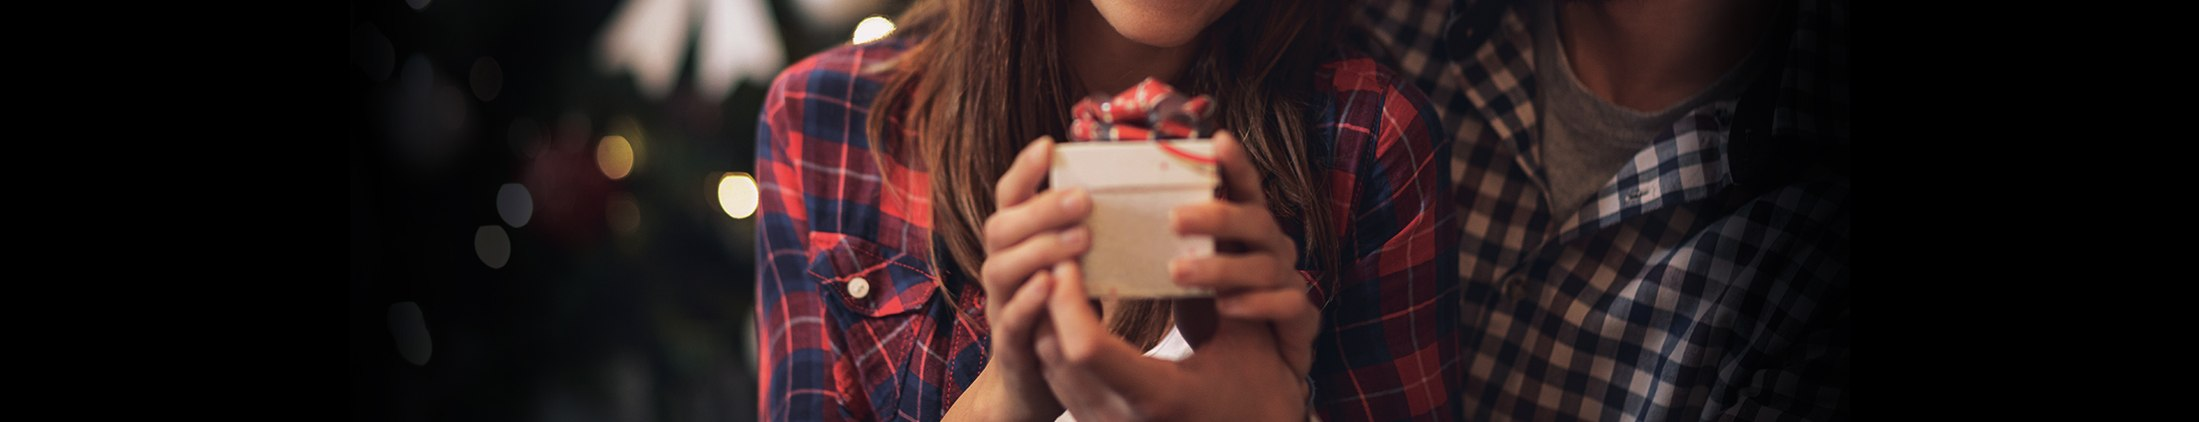 Gift ideas for Christmas and New Year